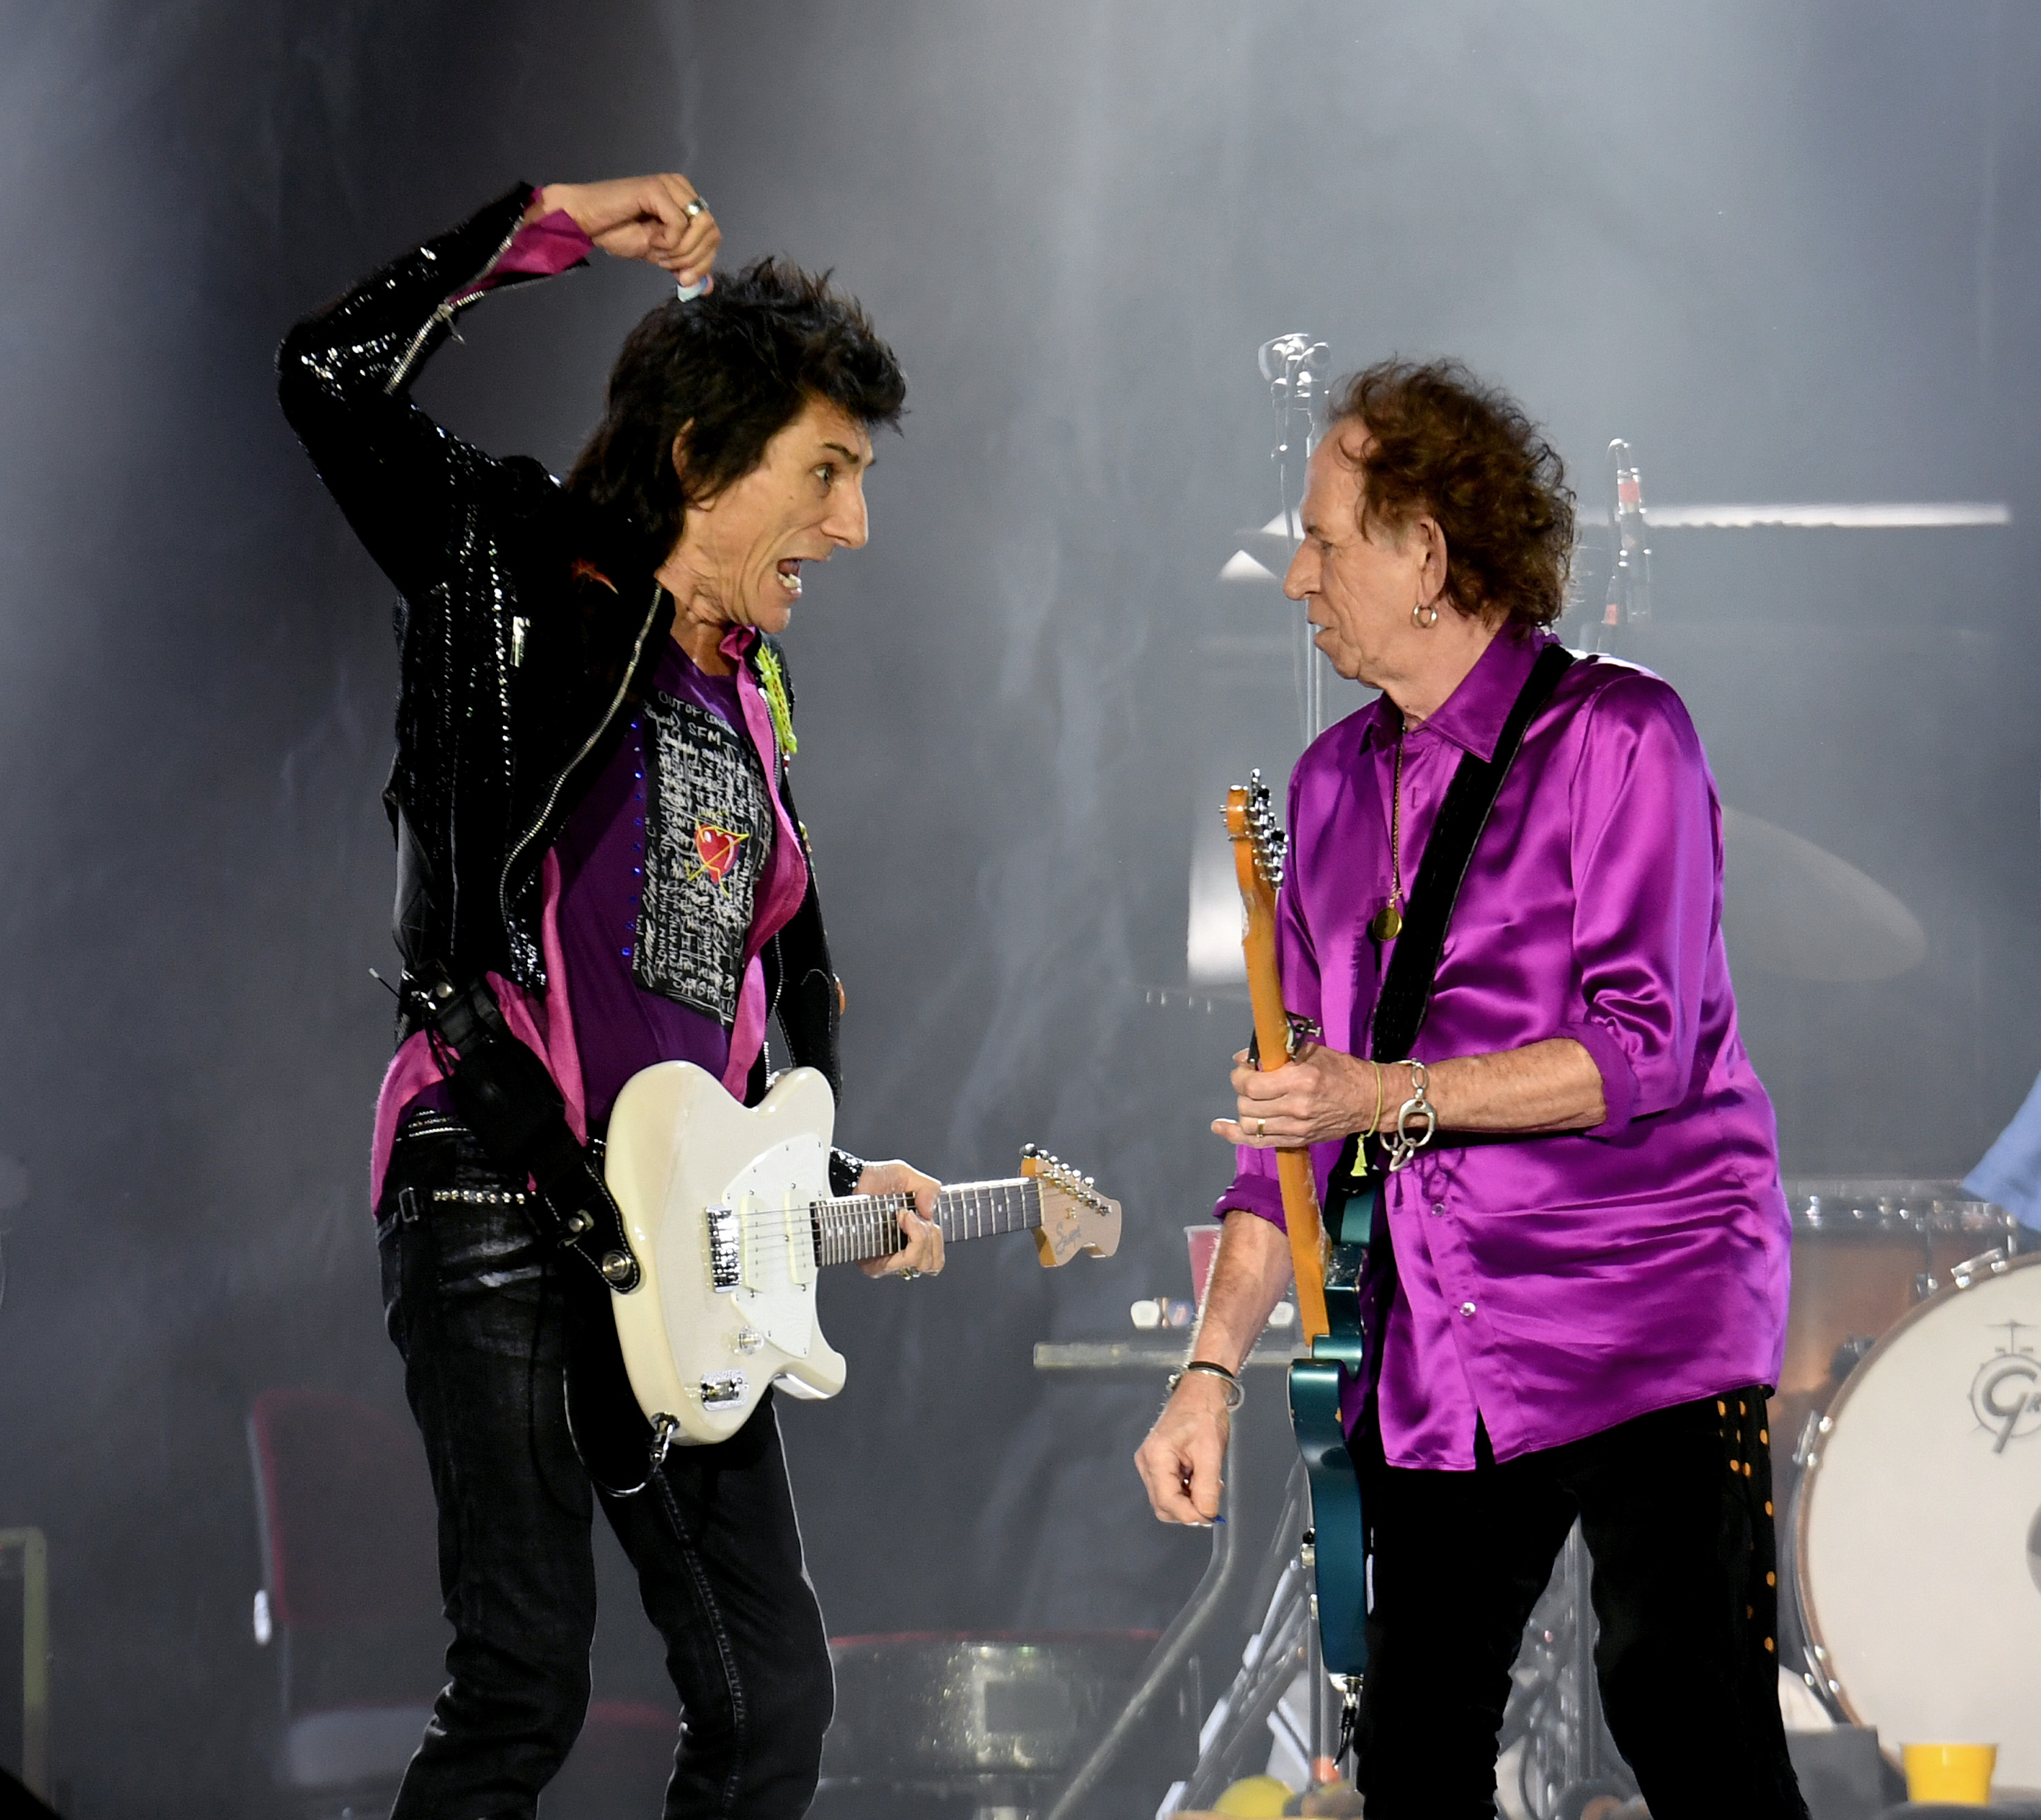 PASADENA, CALIFORNIA - AUGUST 22: Ronnie Wood (L) and Keith Richards of The Rolling Stones perform onstage at Rose Bowl on August 22, 2019 in Pasadena, California. (Photo by Kevin Winter/Getty Images)